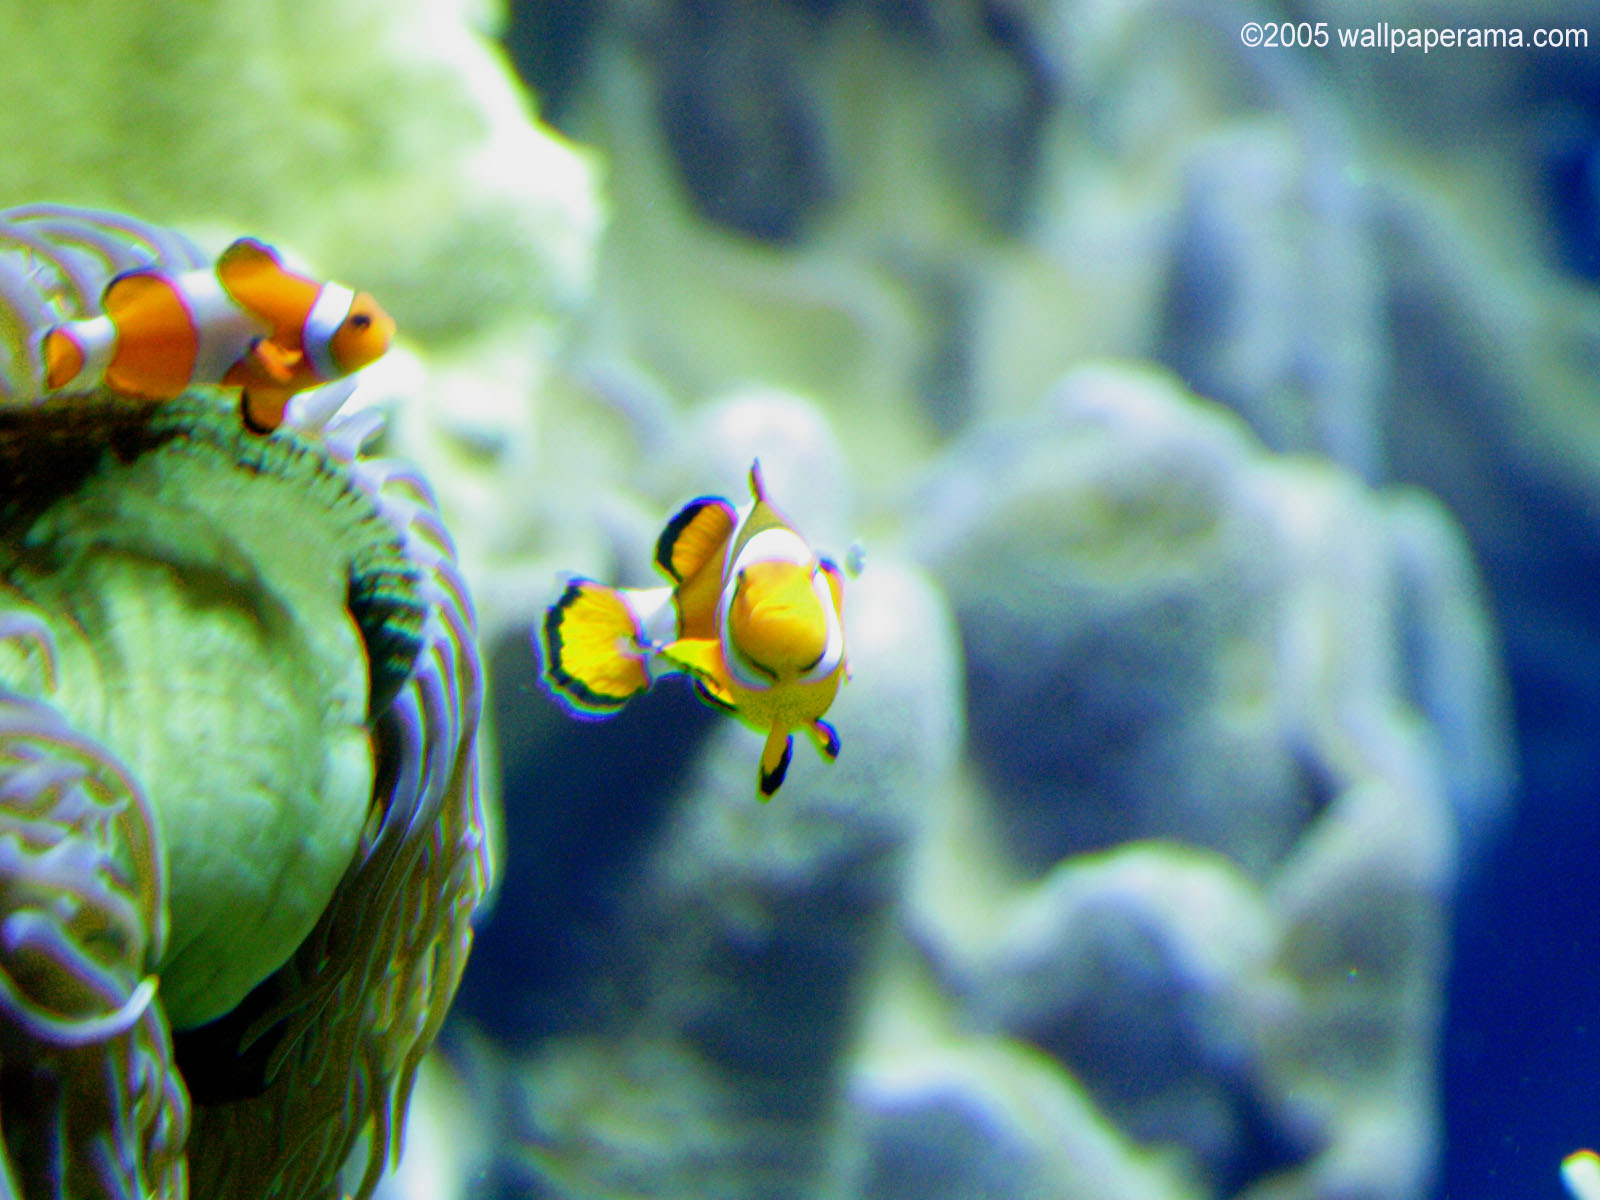 Anemonefish Wallpaper